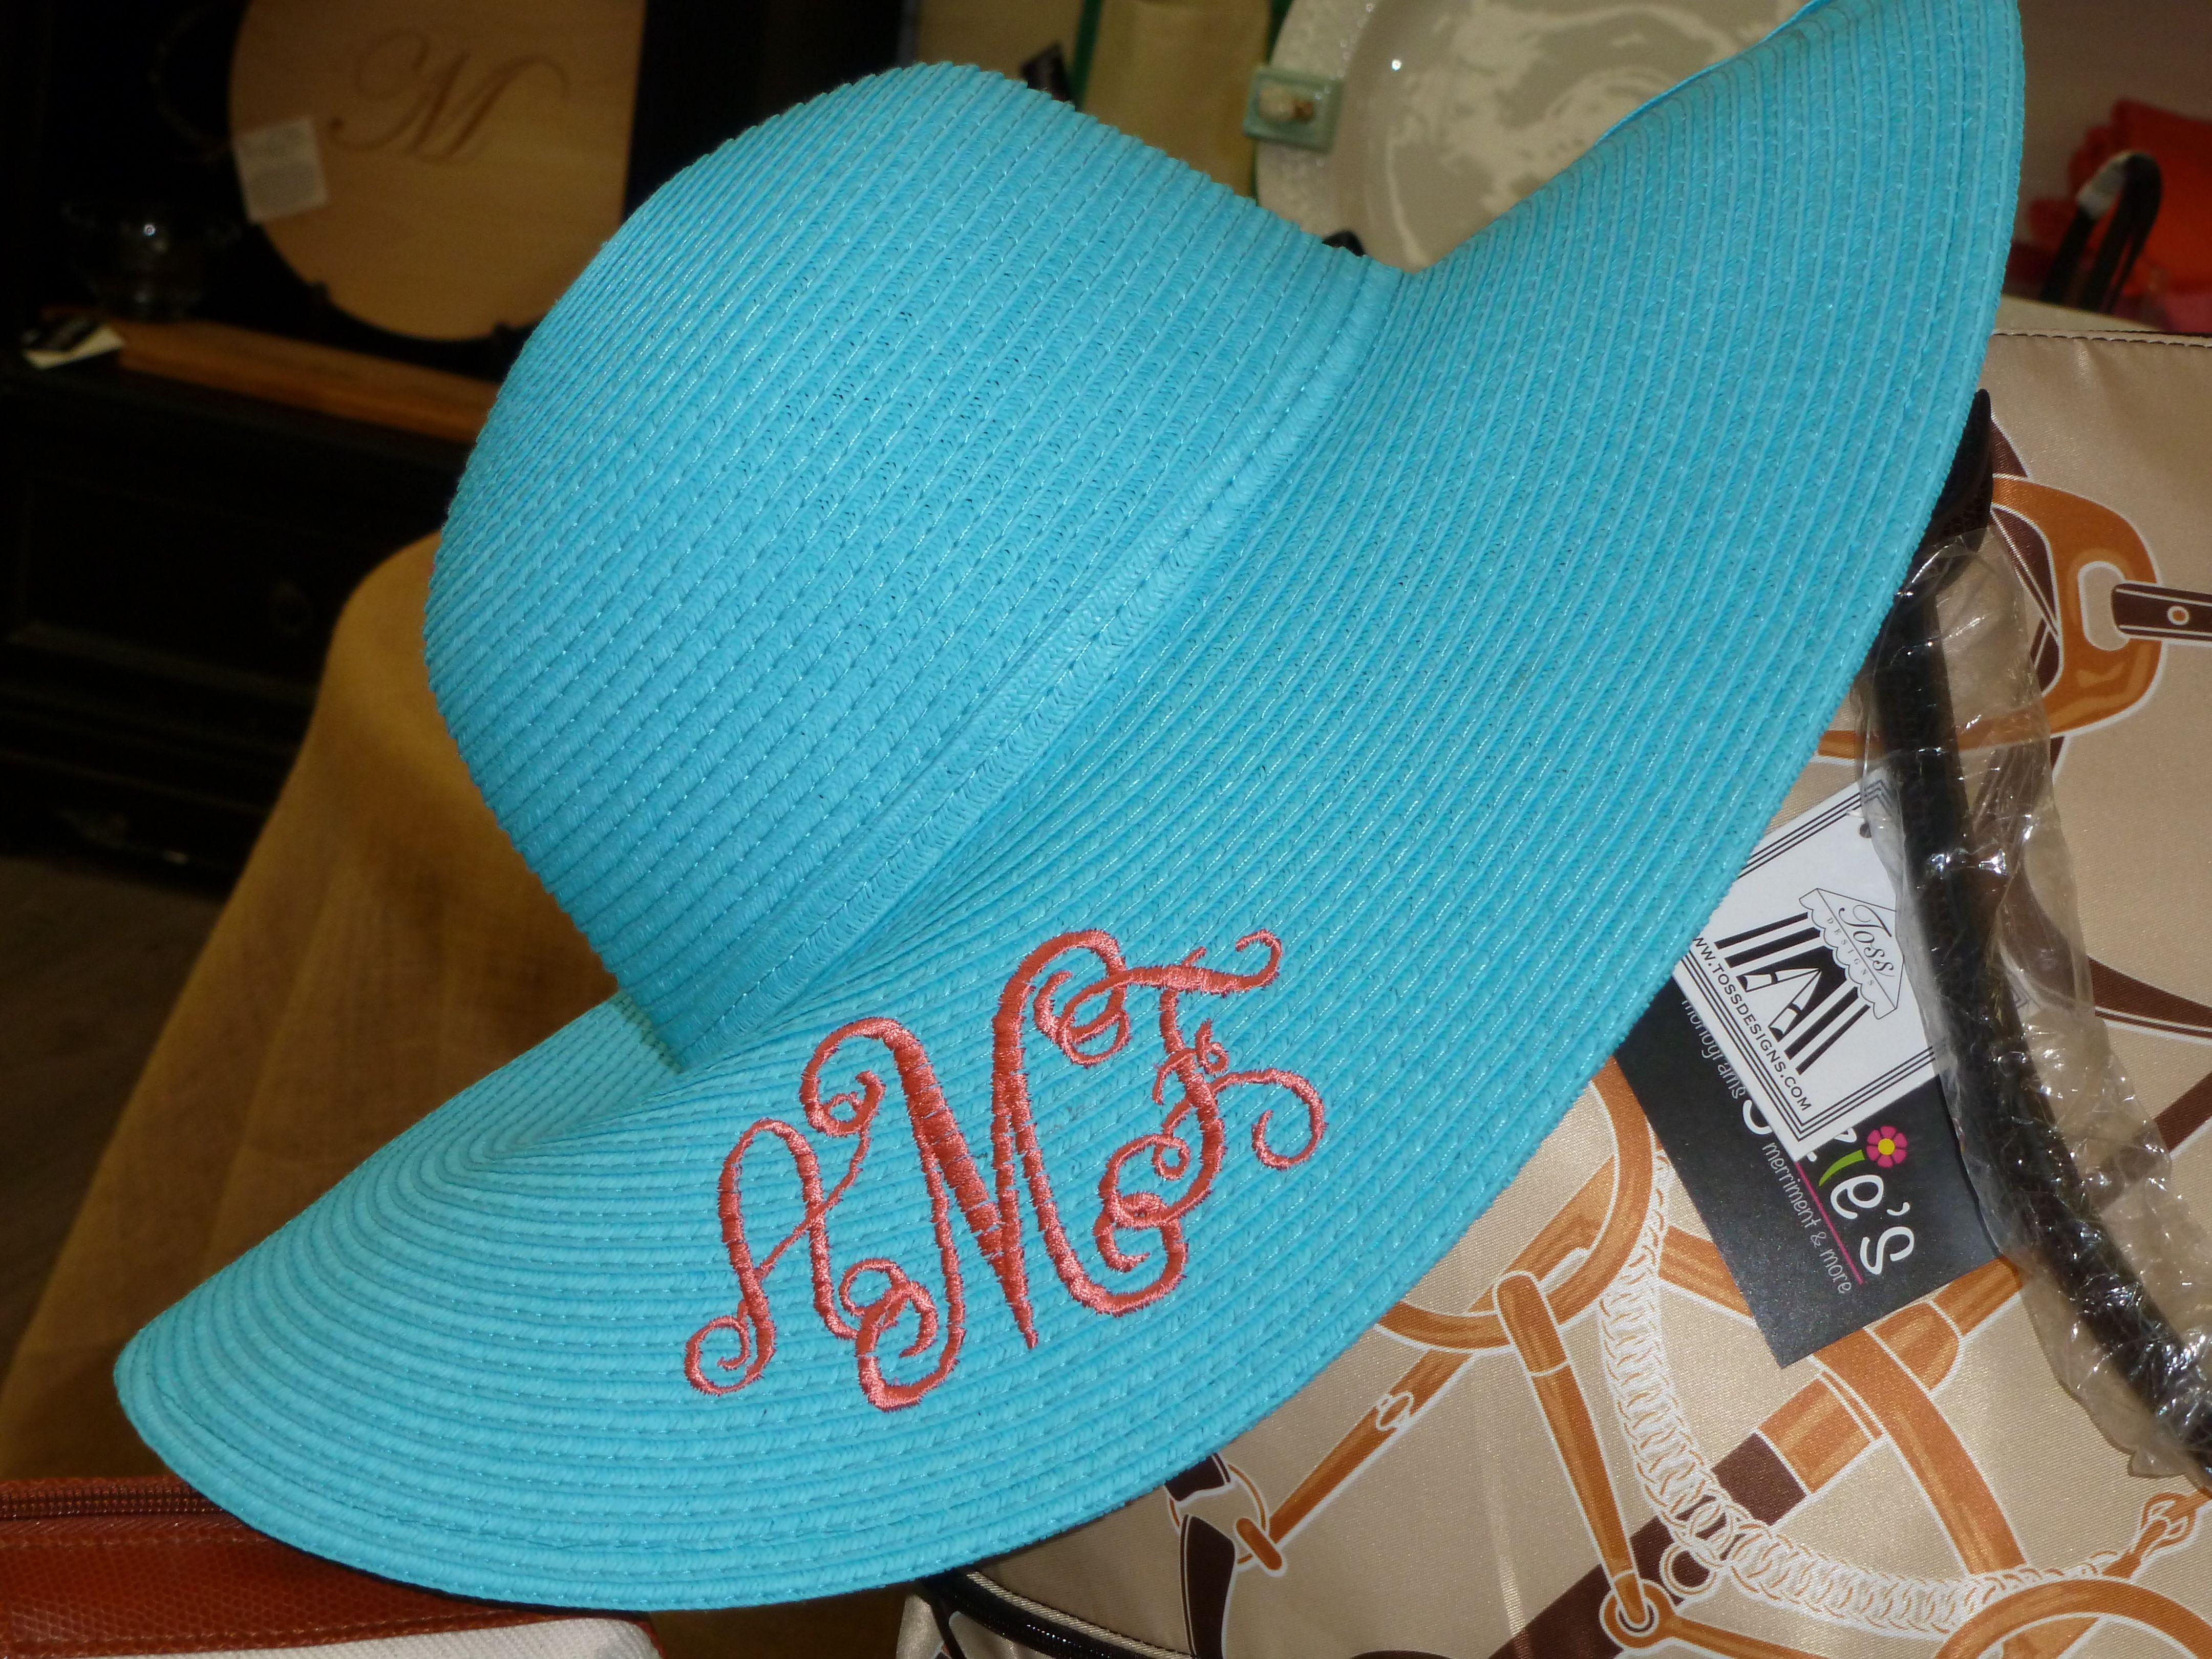 We've still got sunhats in stock!  Get yours for this hot Florida sun